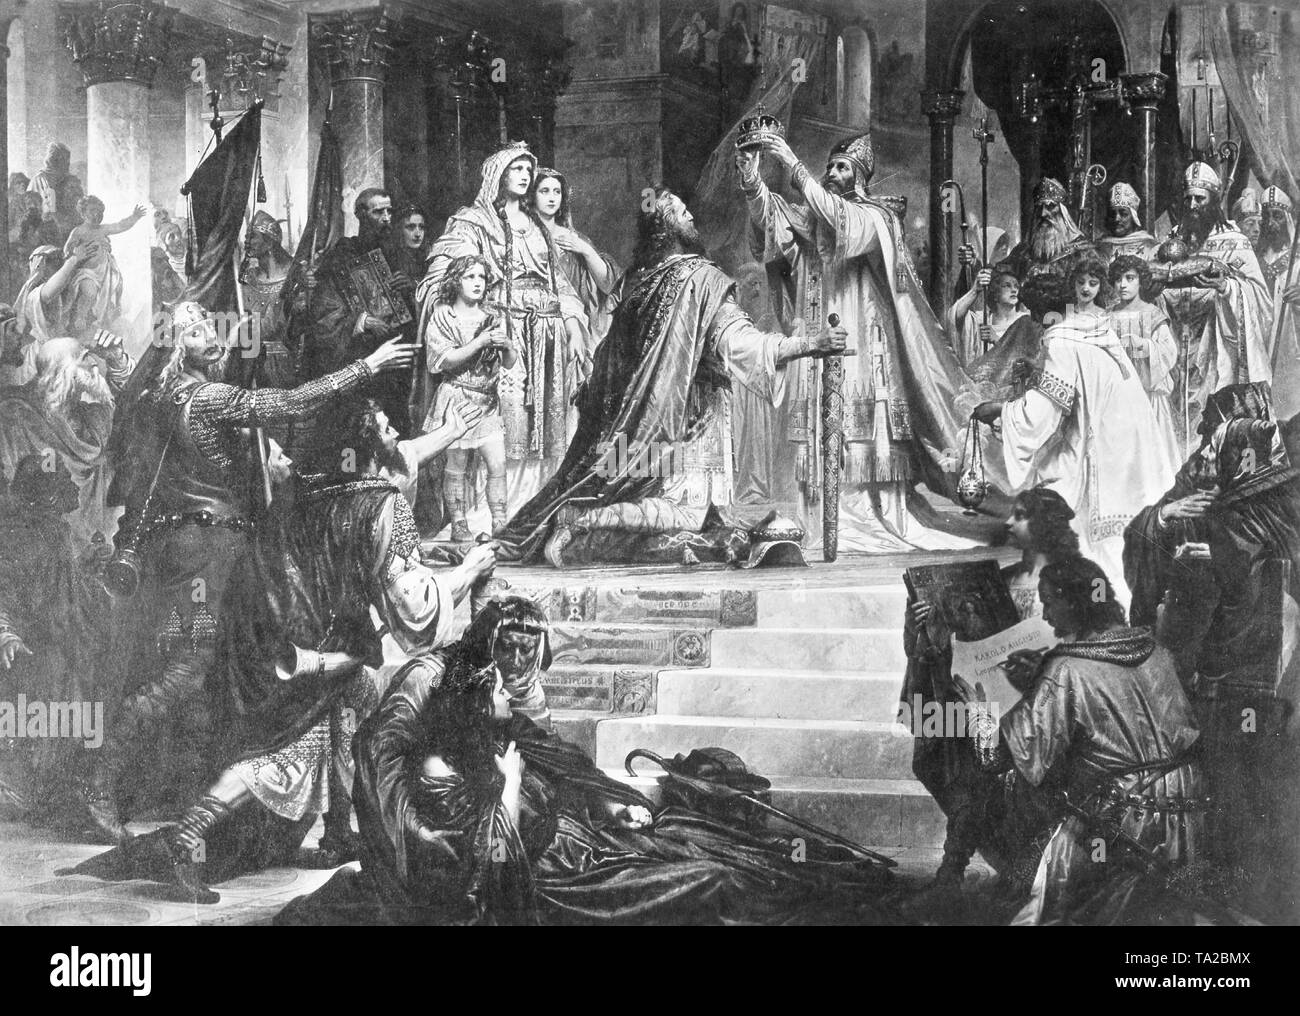 Charlemagne crowned Holy Roman Emperor by Pope Leo III on Christmas Day at Old St. Peter's Basilica in 800. - Stock Image